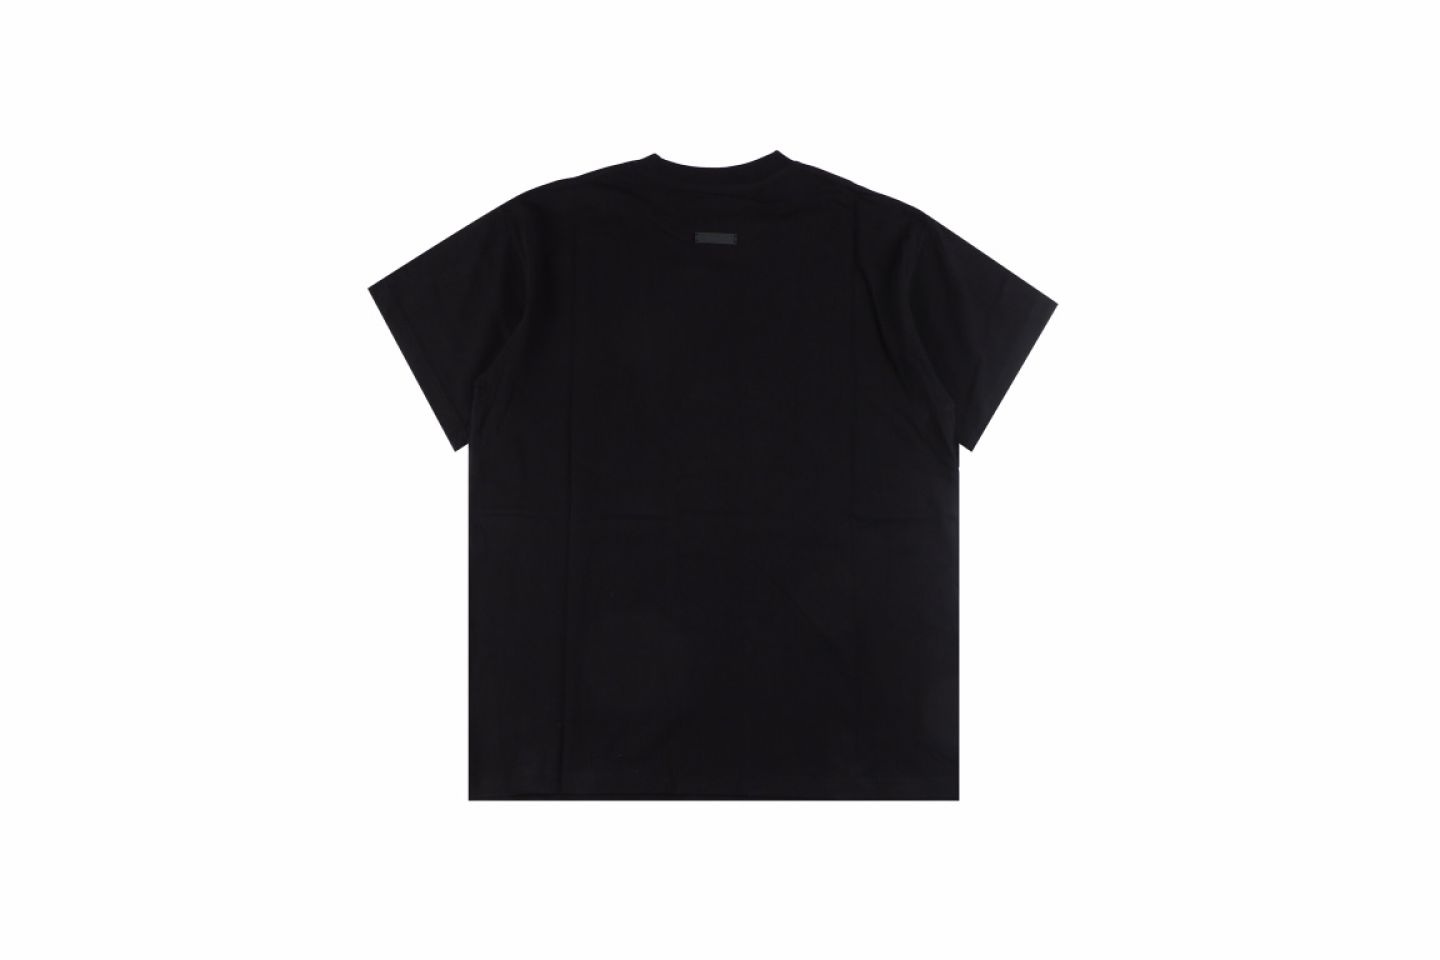 Shirt Fear of God classic letter logo printing ree on chest 2 5